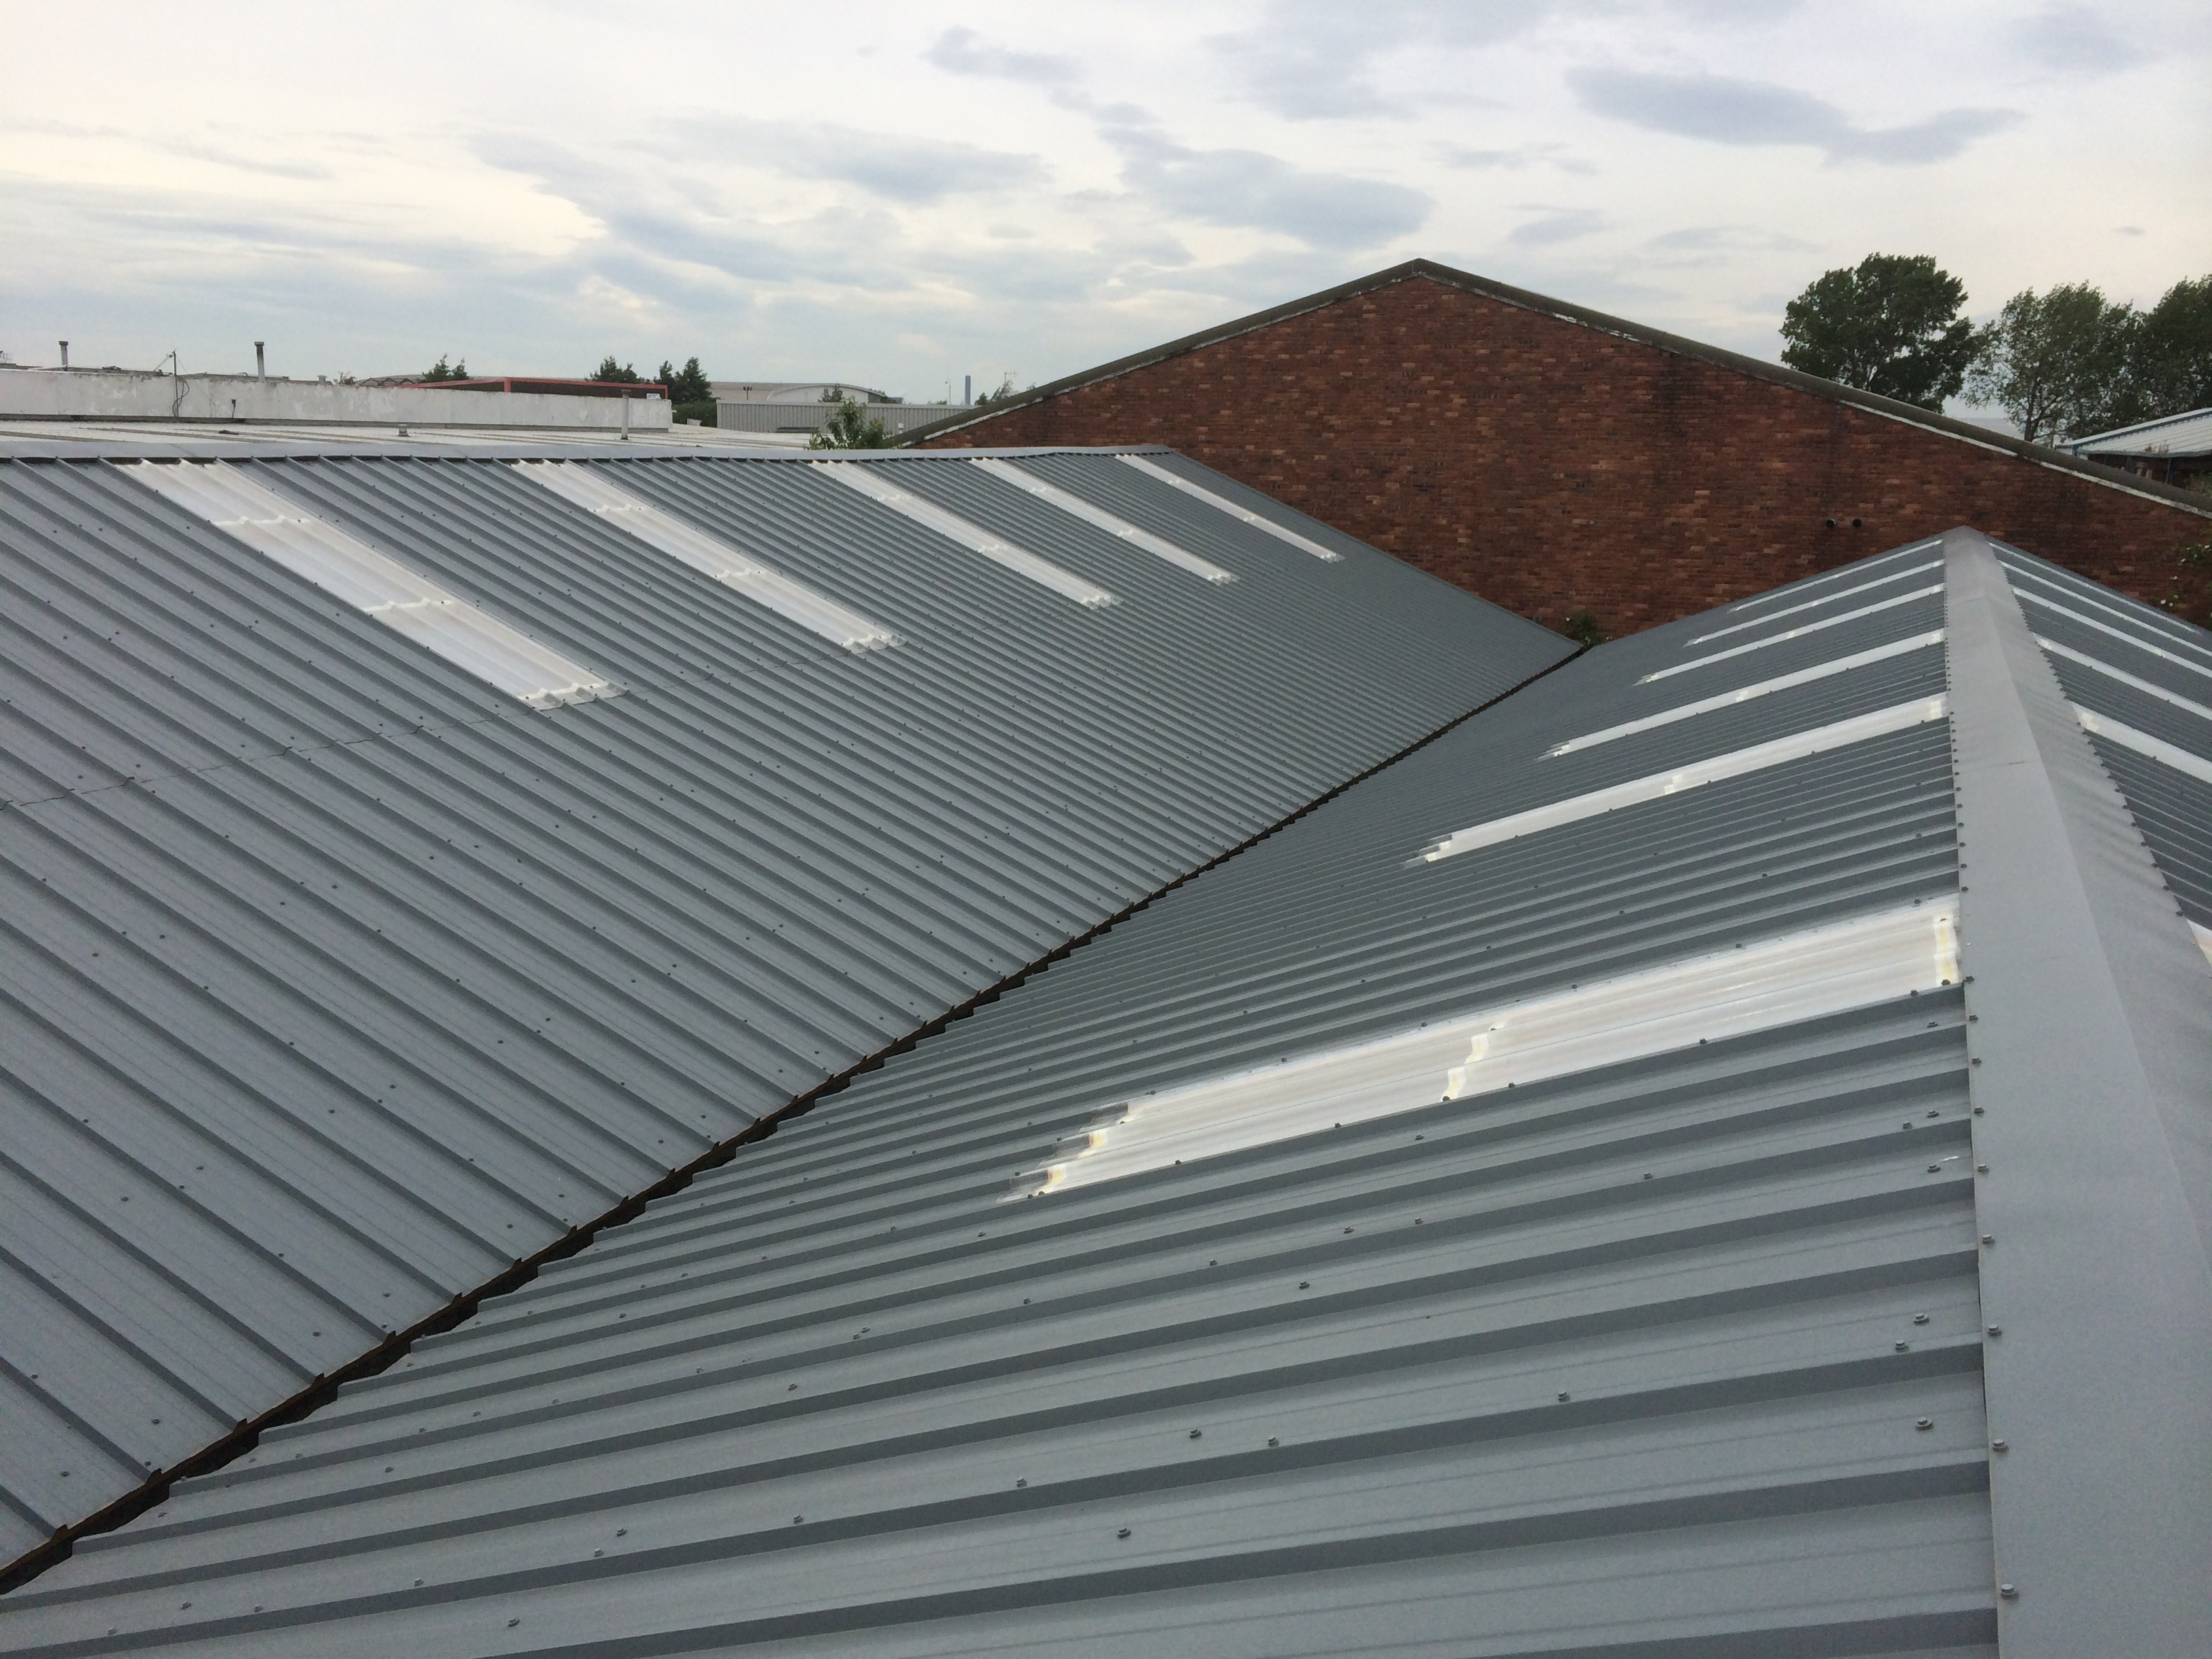 Commercial Amp Industrial Roofers Maincoat Limited